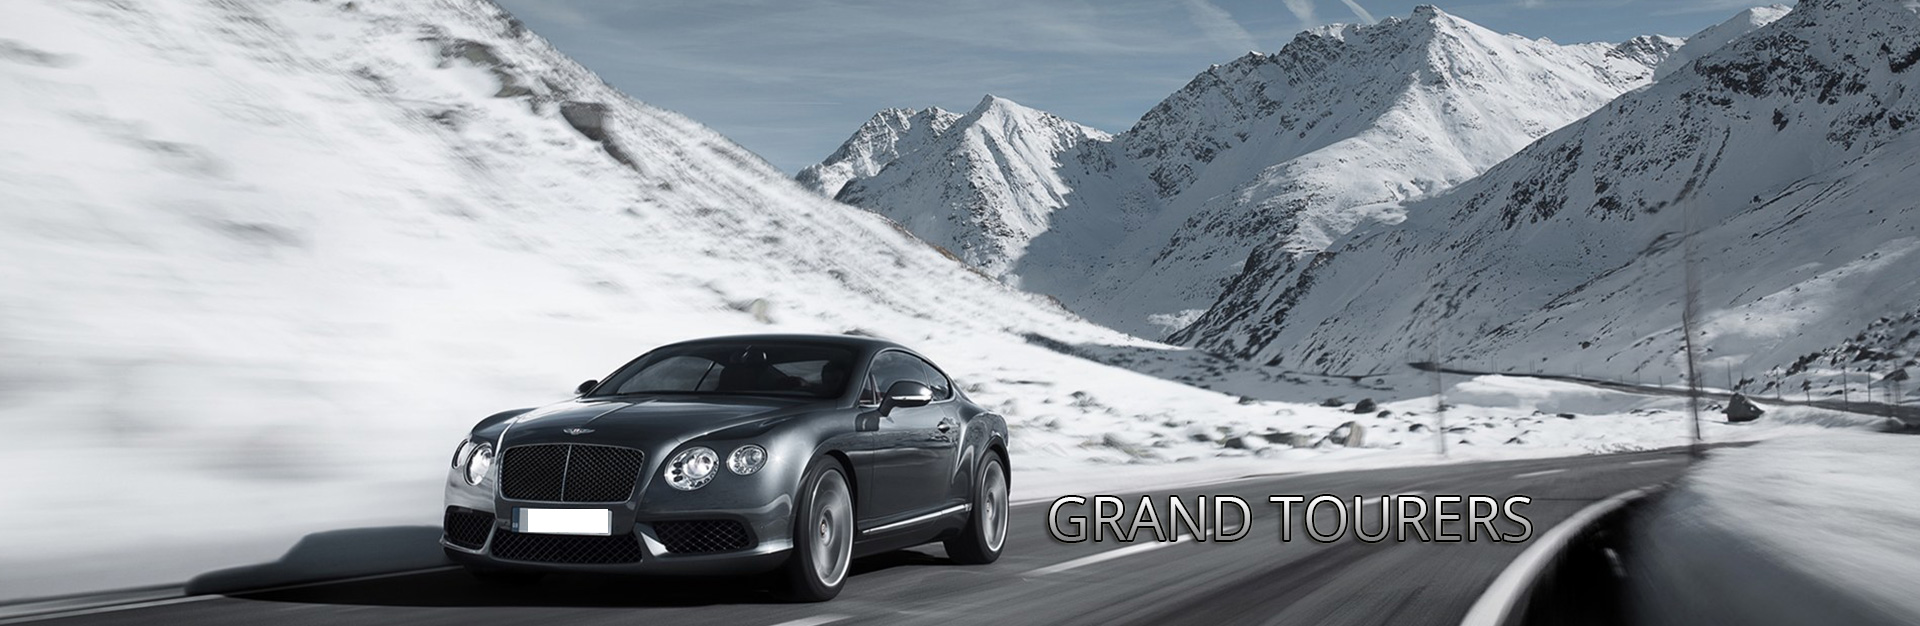 Hire GT / Gran Touring cars